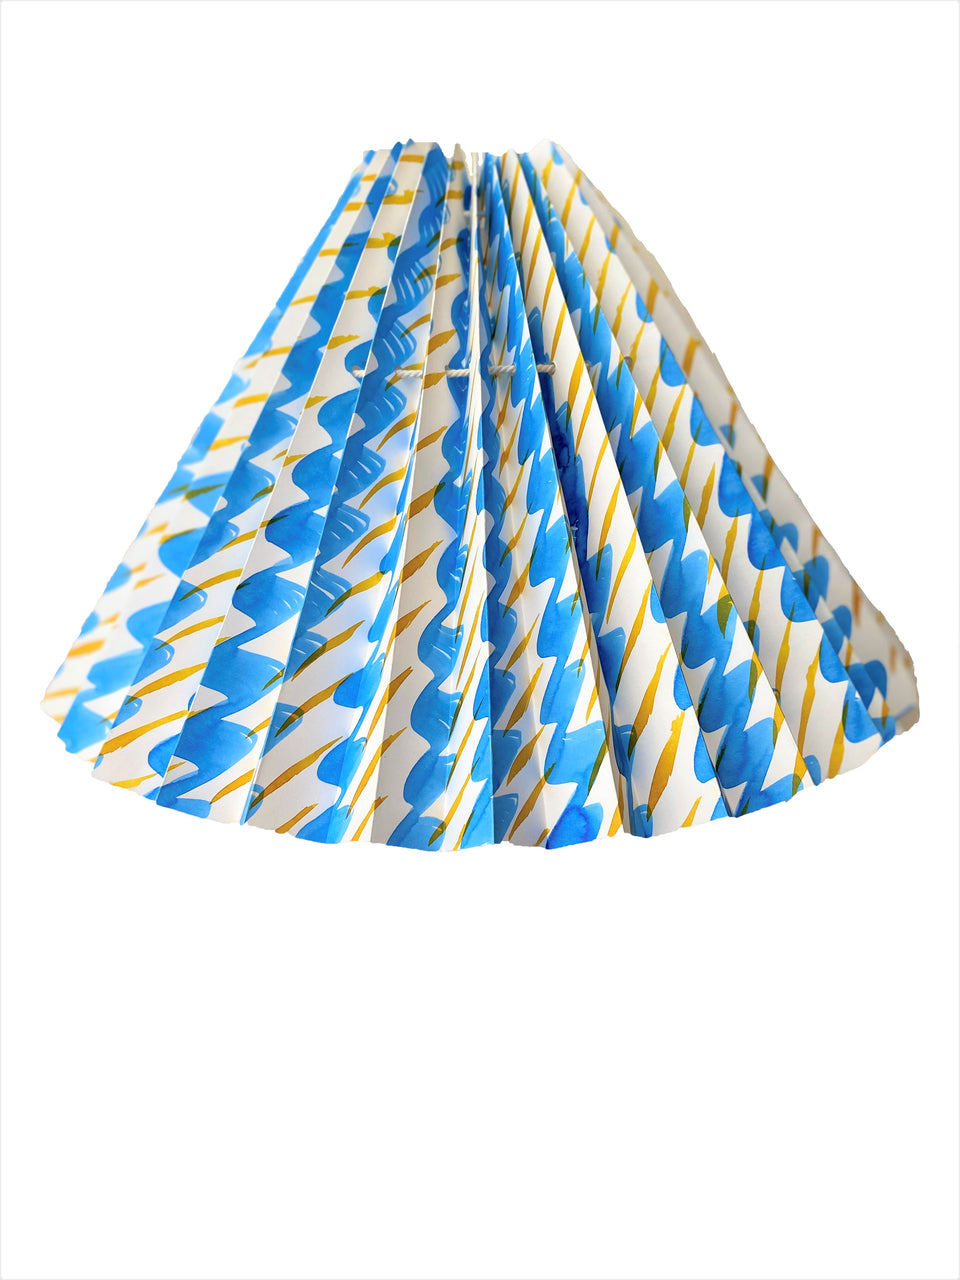 HANDMADE PAPER LAMPSHADE IN SKY BLUE AND YELLOW PEBBLE AND DASH